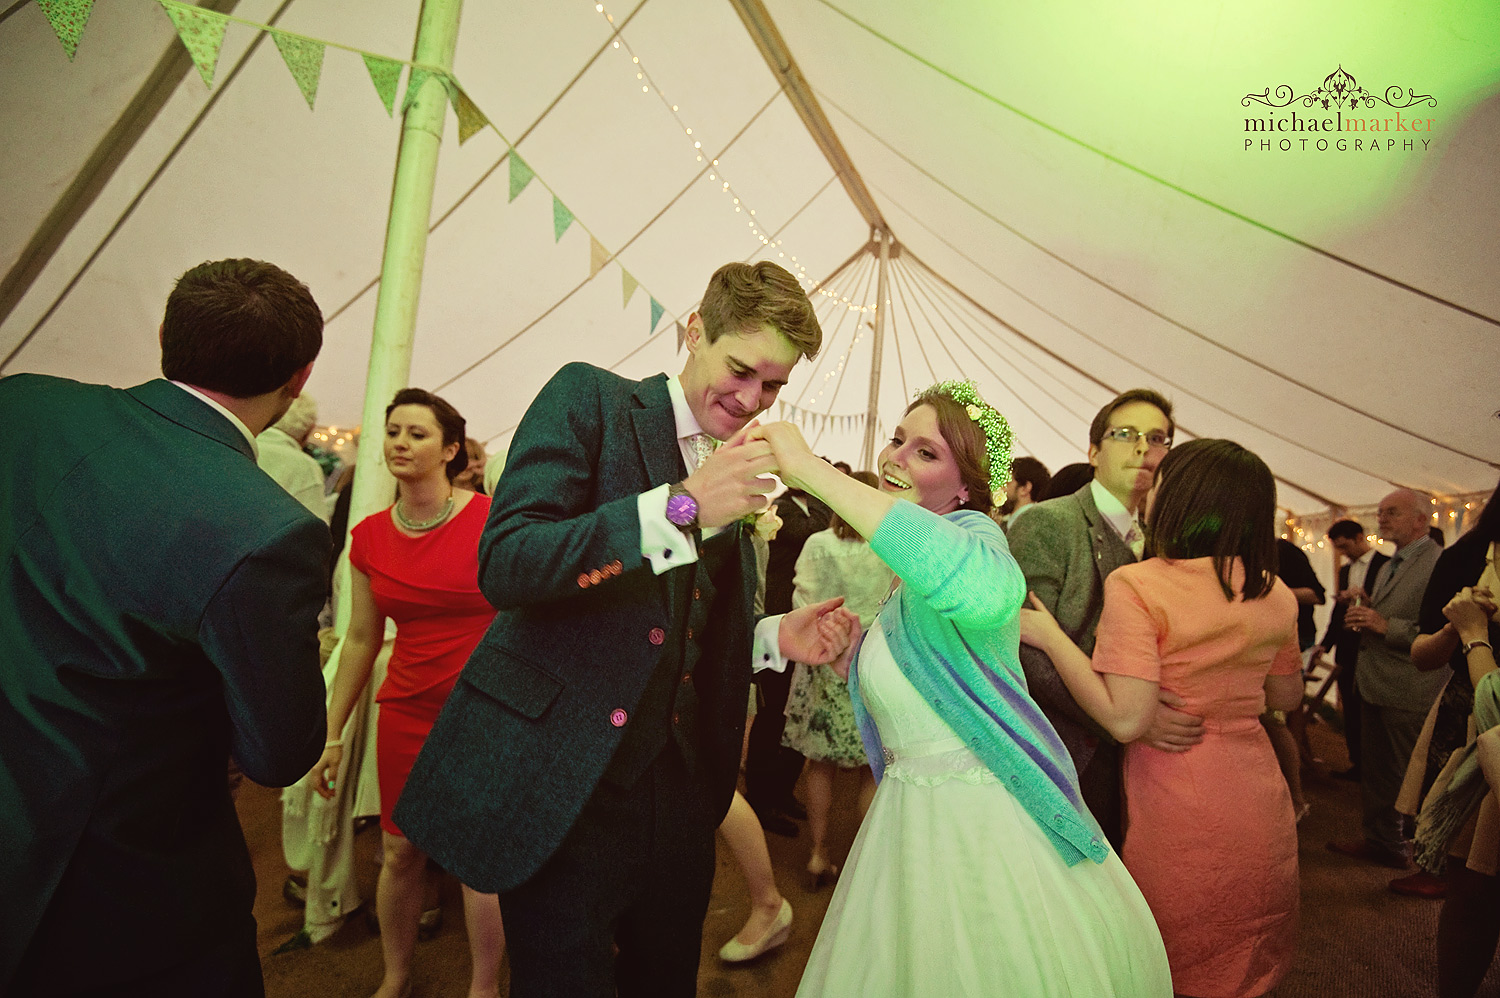 Wiltshire-wedding-49